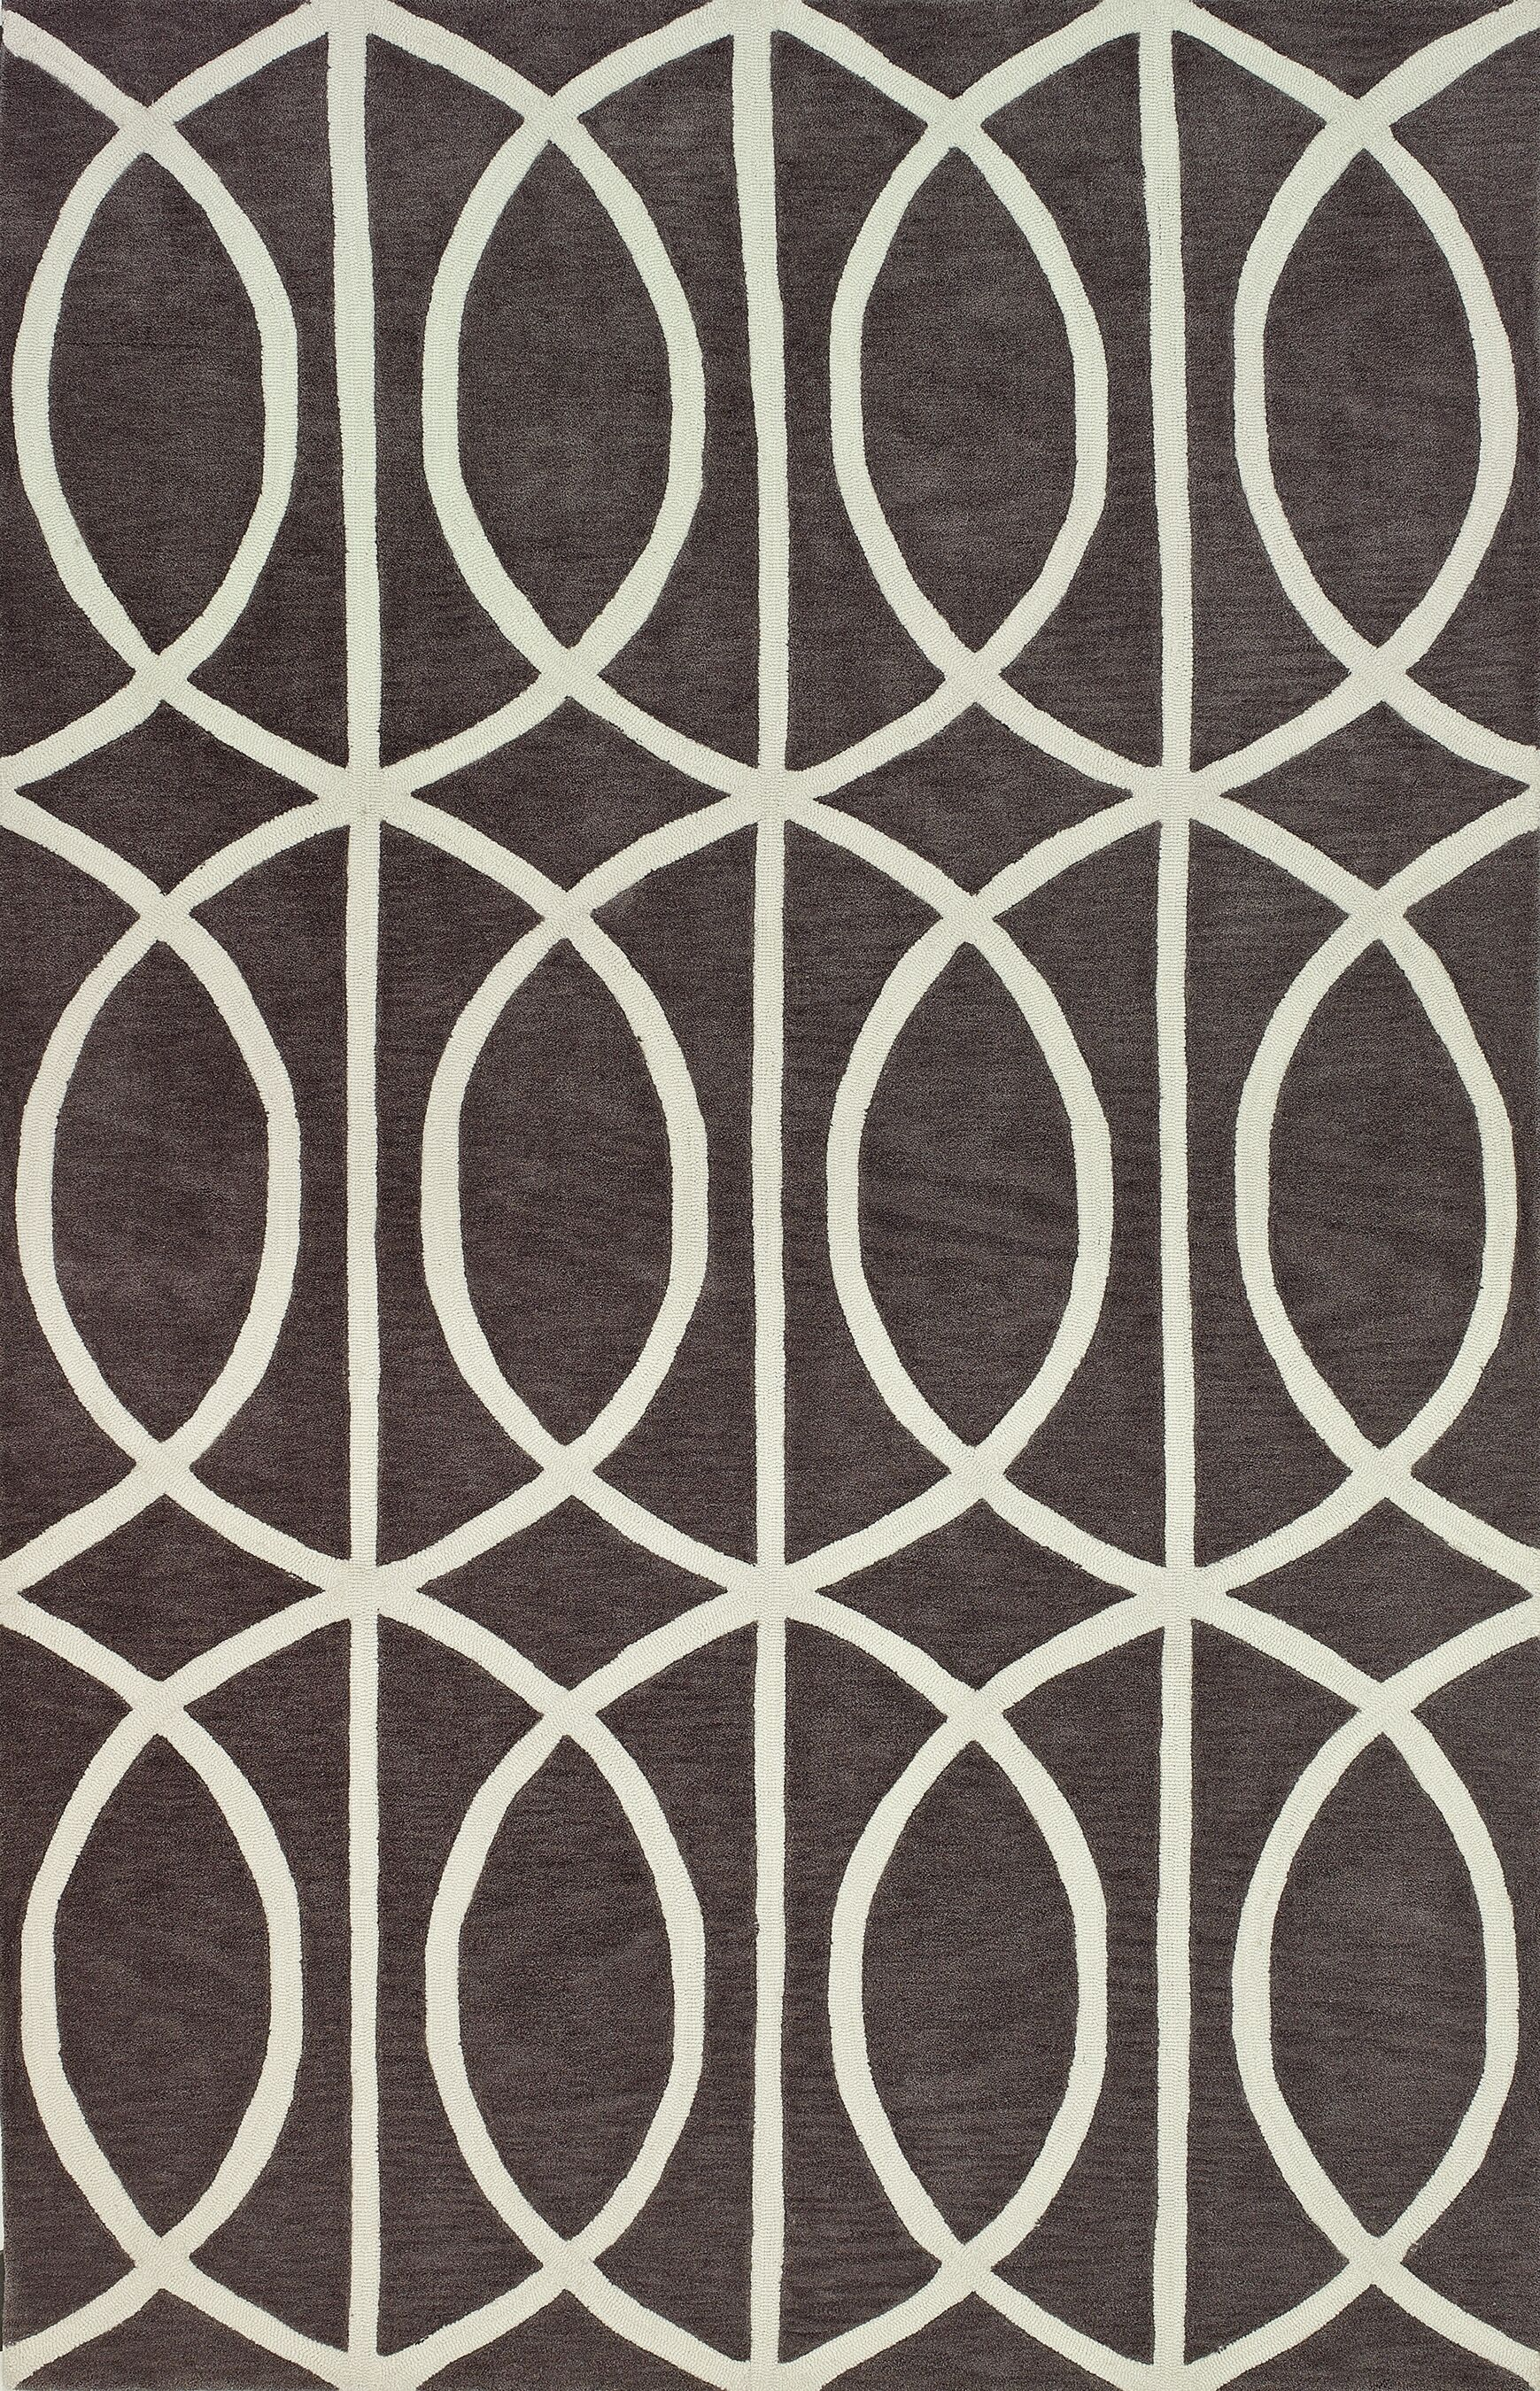 Blackledge Gray Area Rug Rug Size: Rectangle 8' x 10'